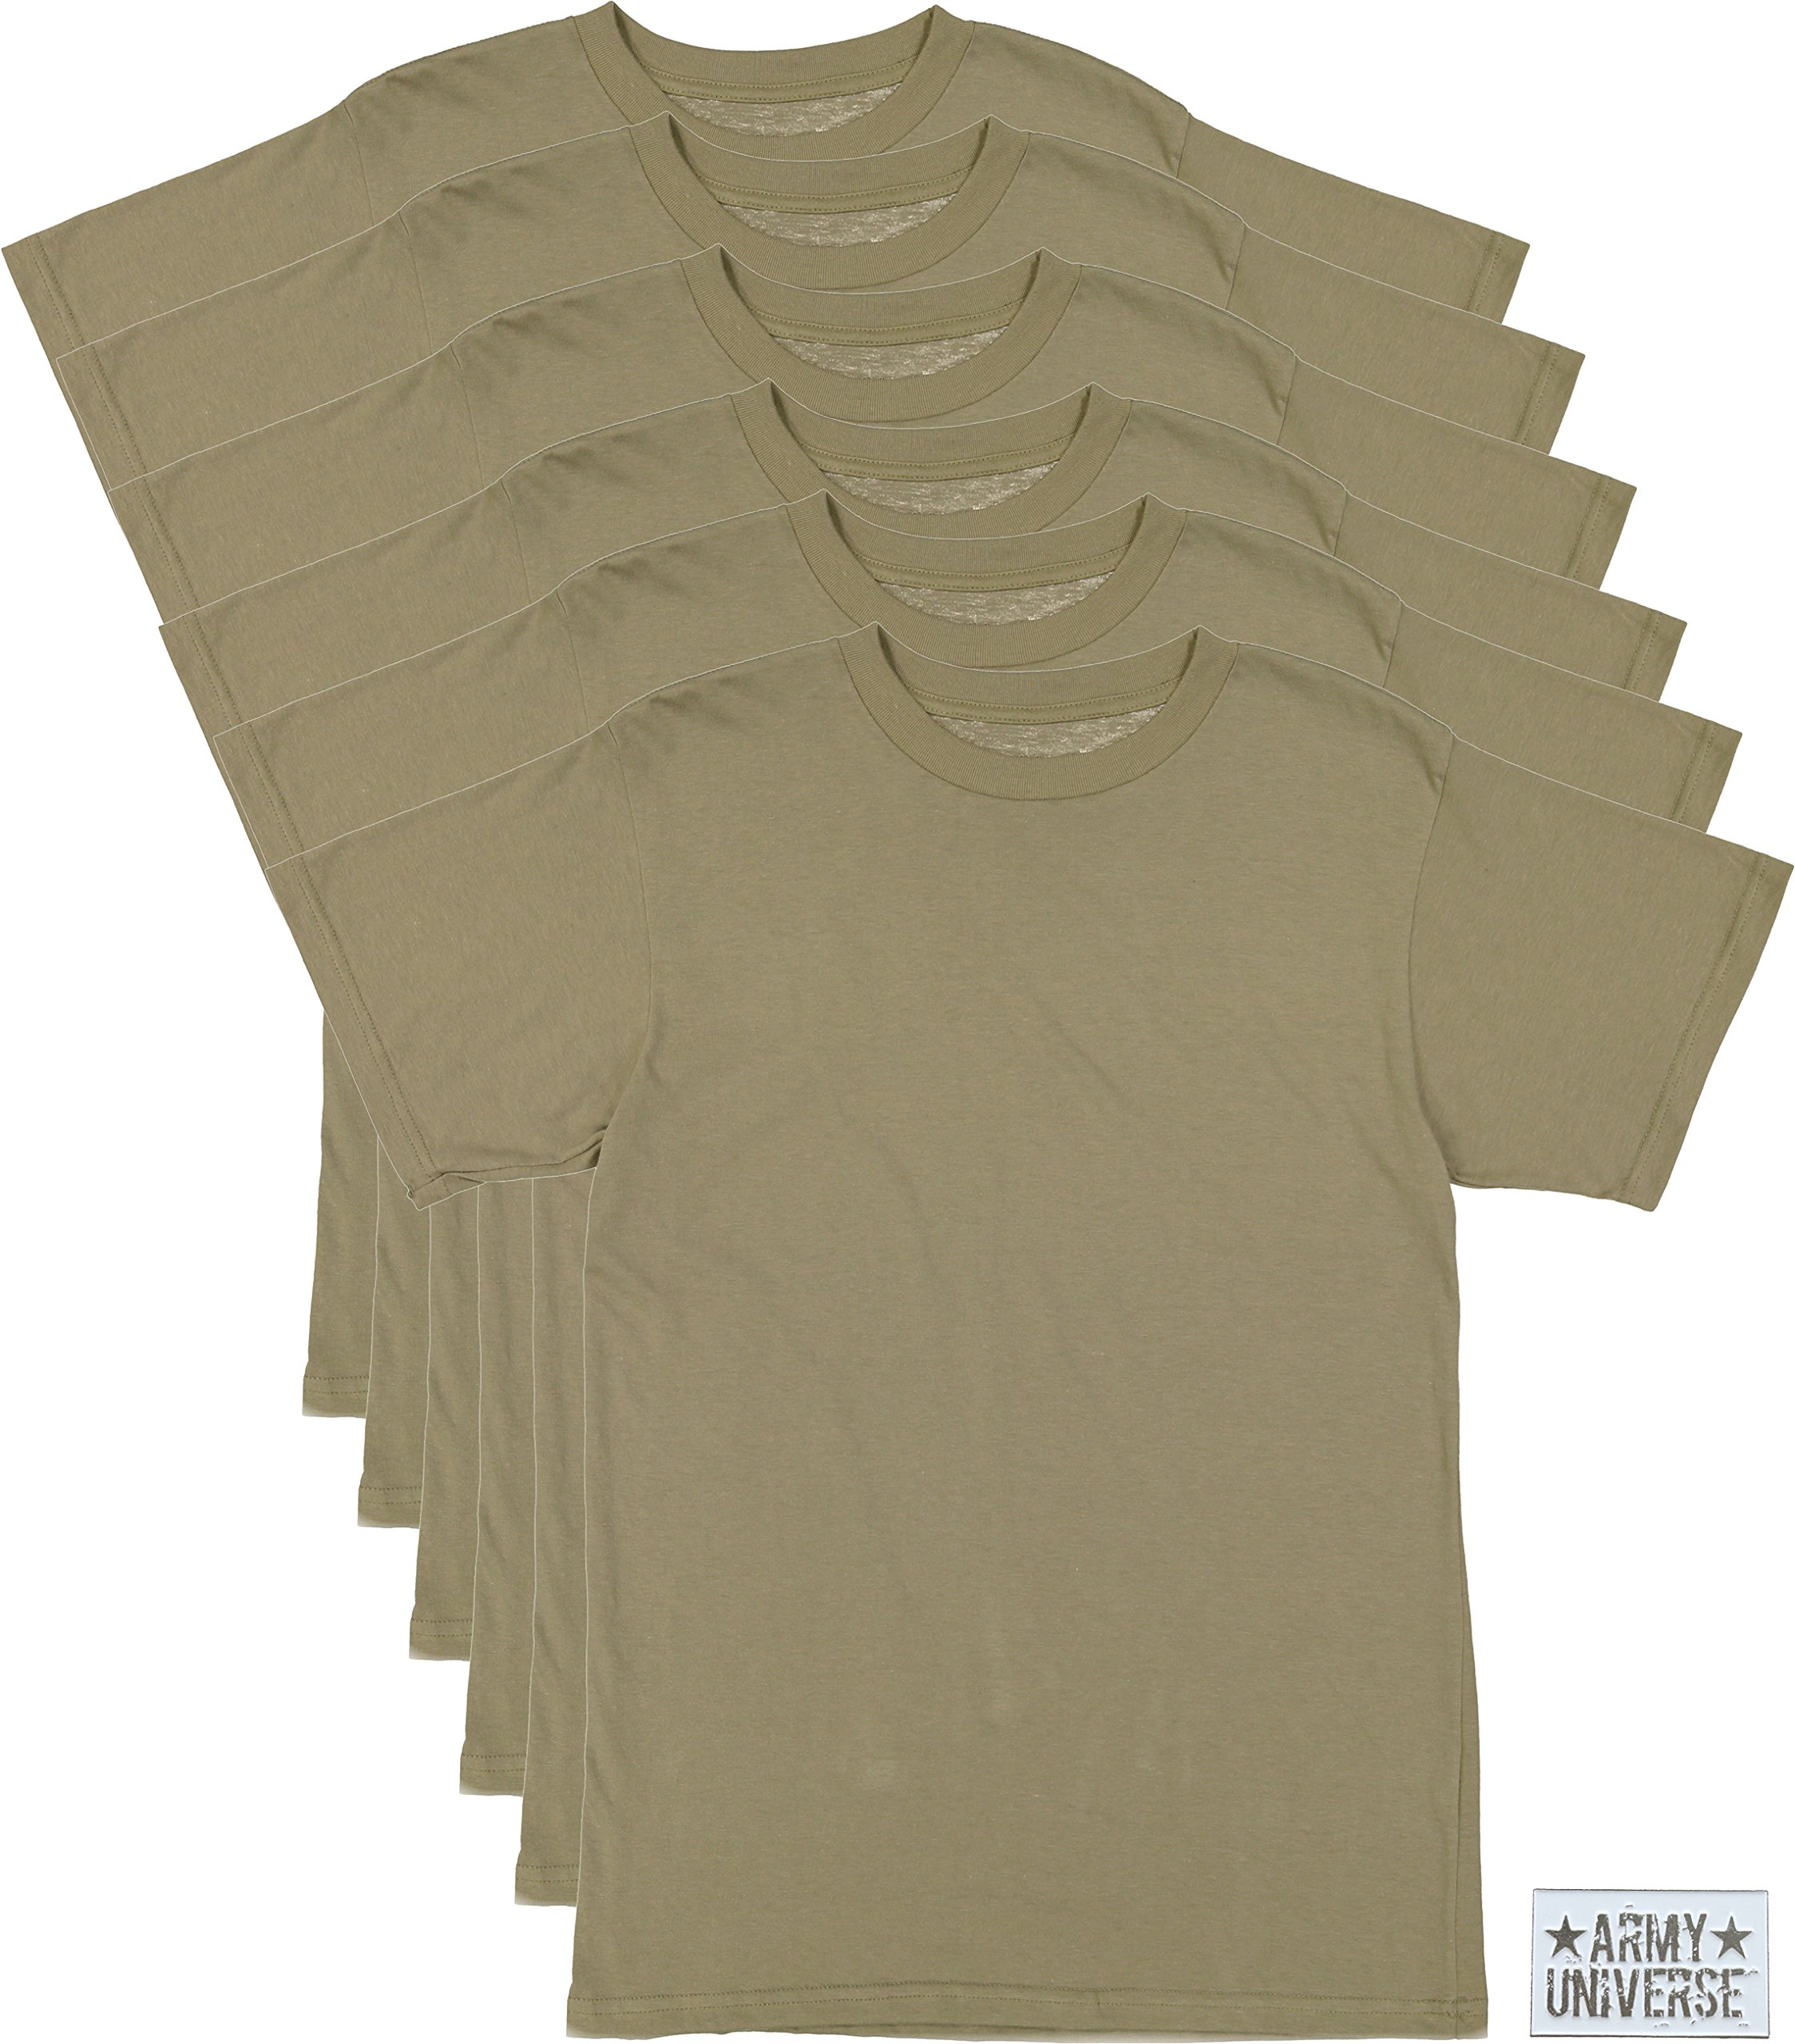 6 Pack - AR 670-1 Army Compliant Coyote Brown Mens Military T-Shirt Poly Cotton Multicam OCP Scorpion Uniform Approved (Small/33-37'')